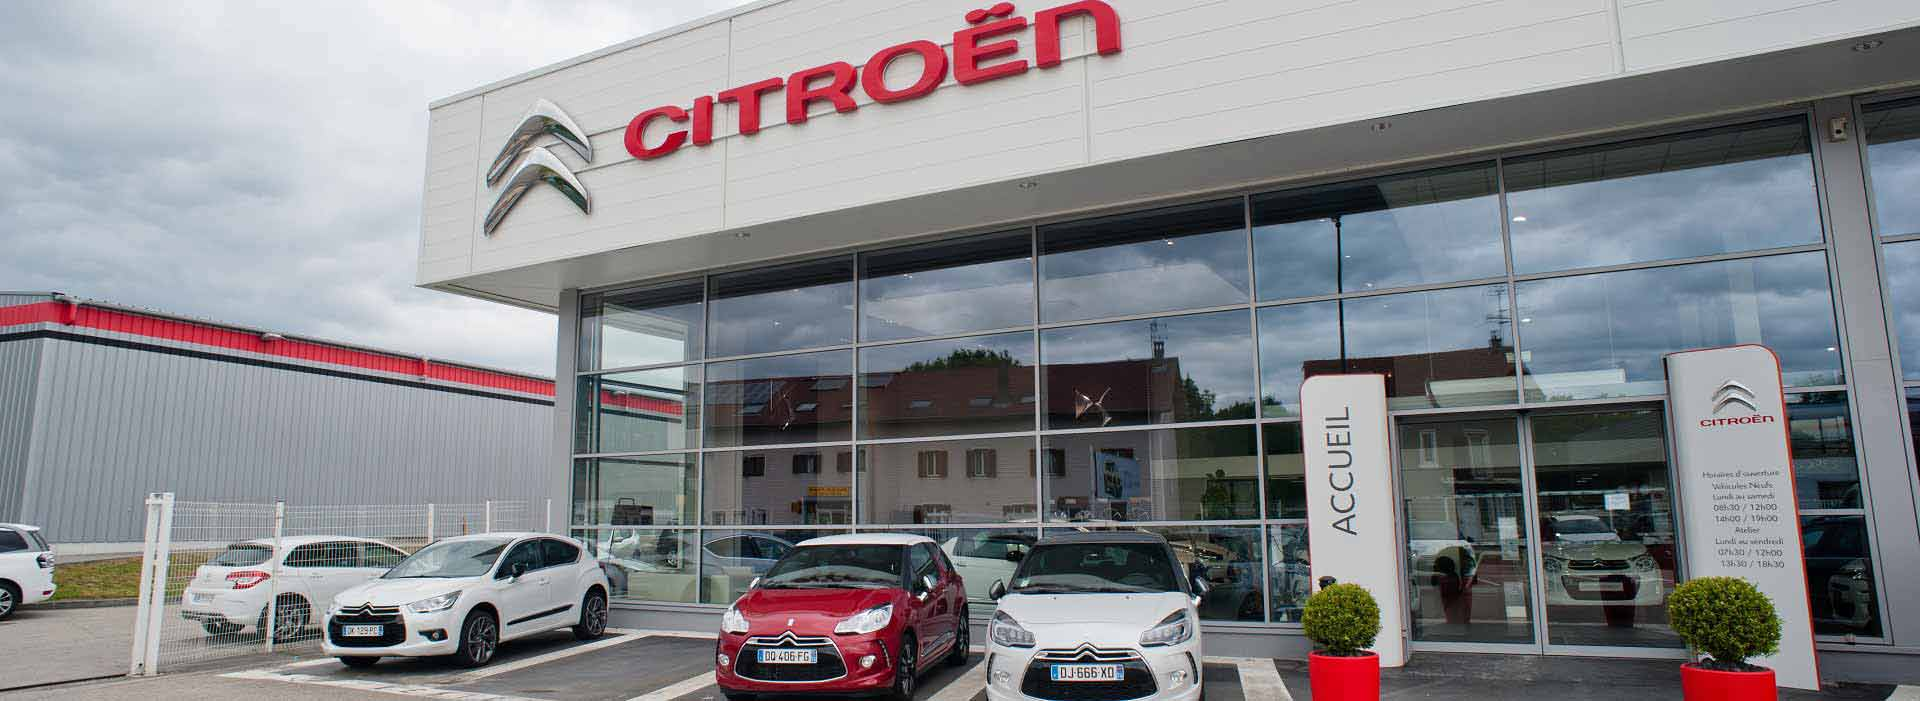 Citroen annemasse concessionnaire garage haute savoie 74 for Garage citroen thonon